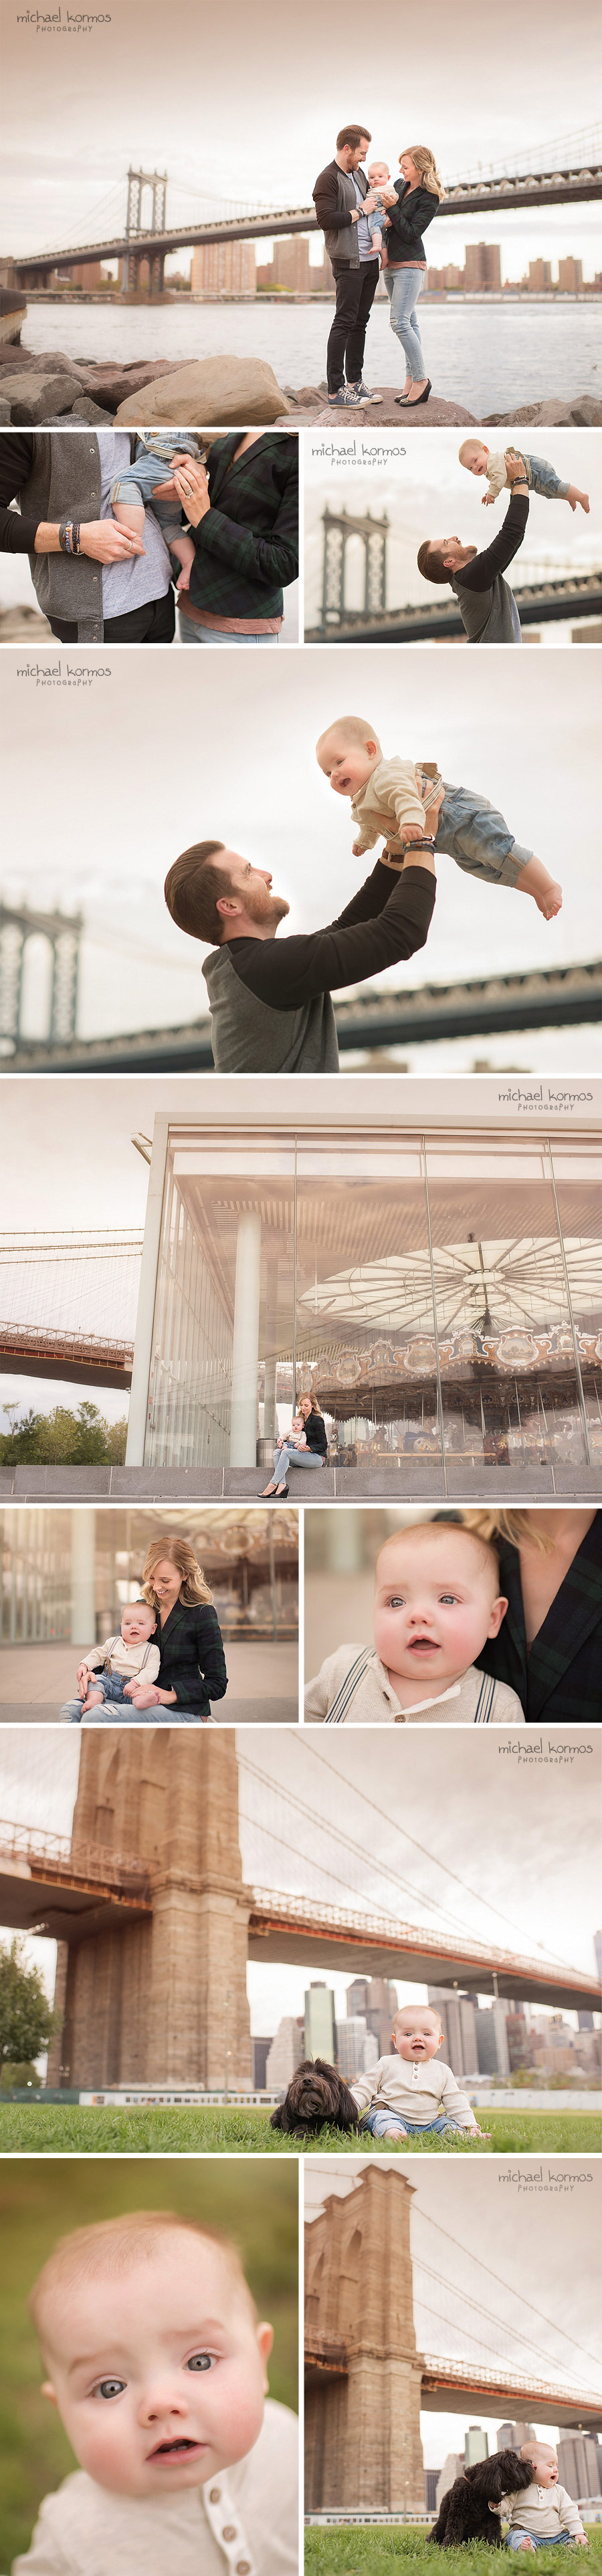 family photo shoot outdoors dumbo brooklyn